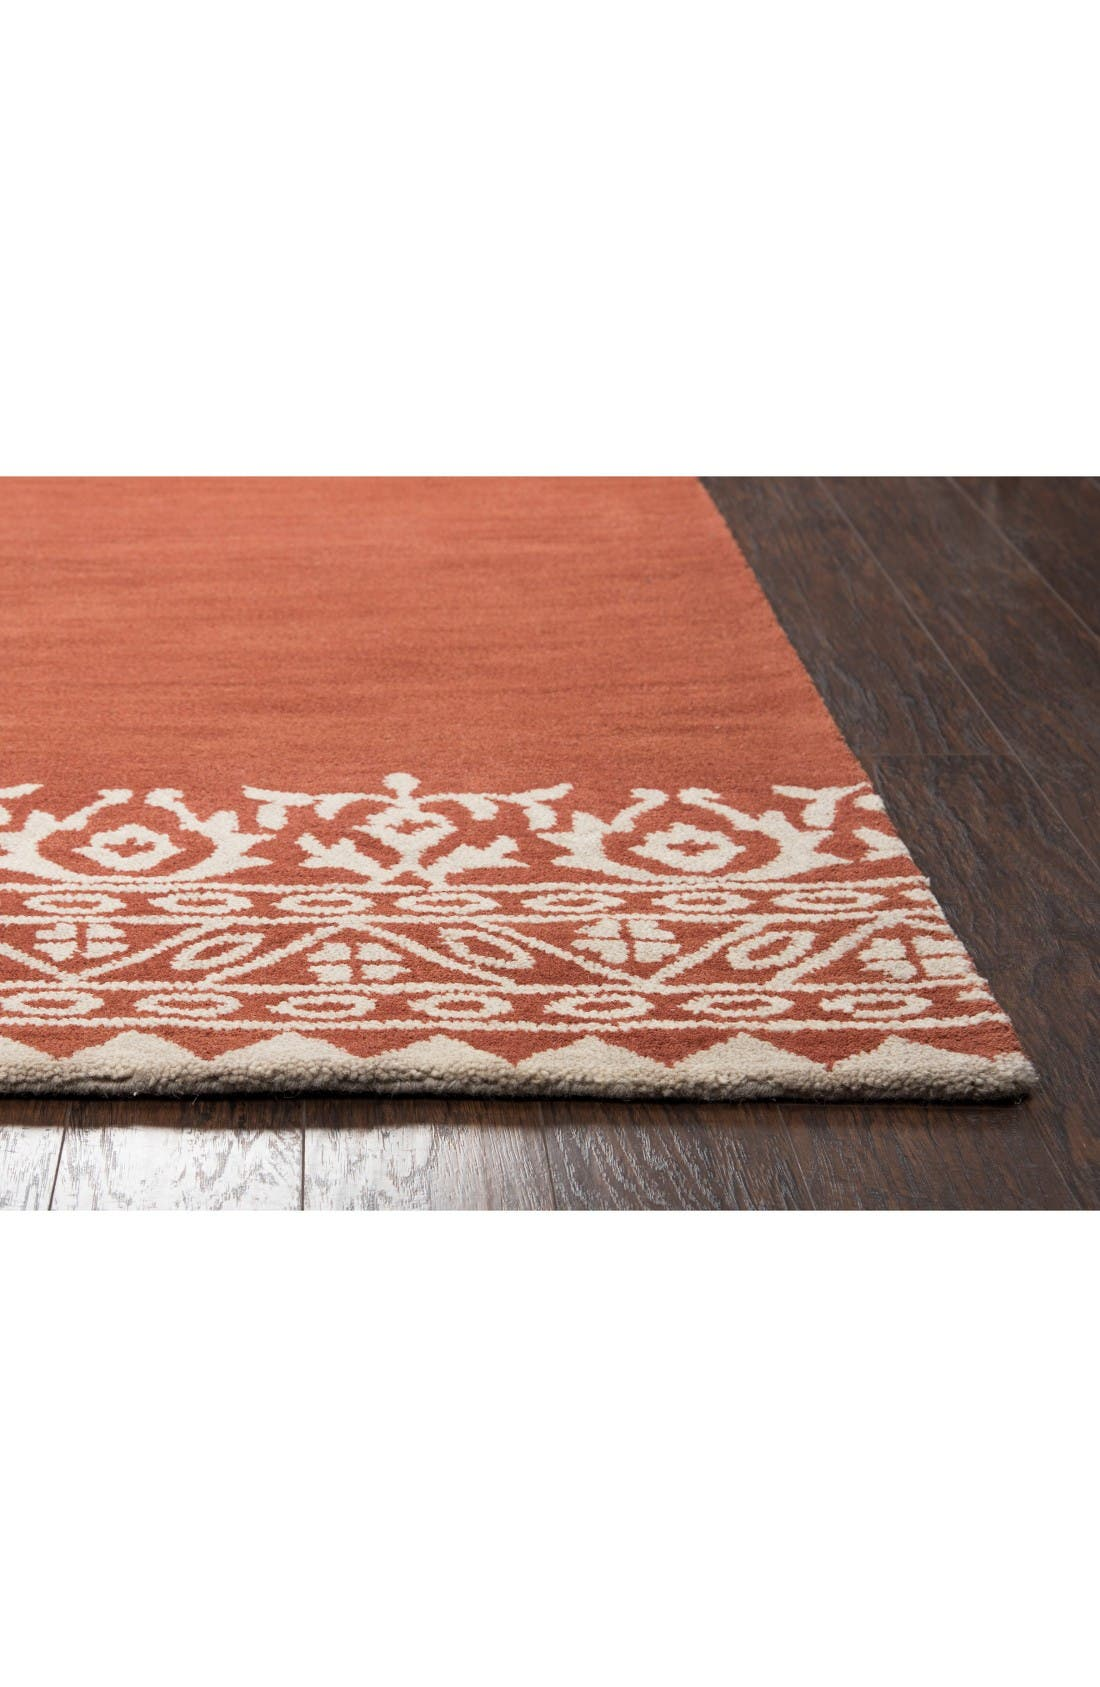 Framed Medallion Hand Tufted Wool Area Rug,                             Alternate thumbnail 2, color,                             Rust